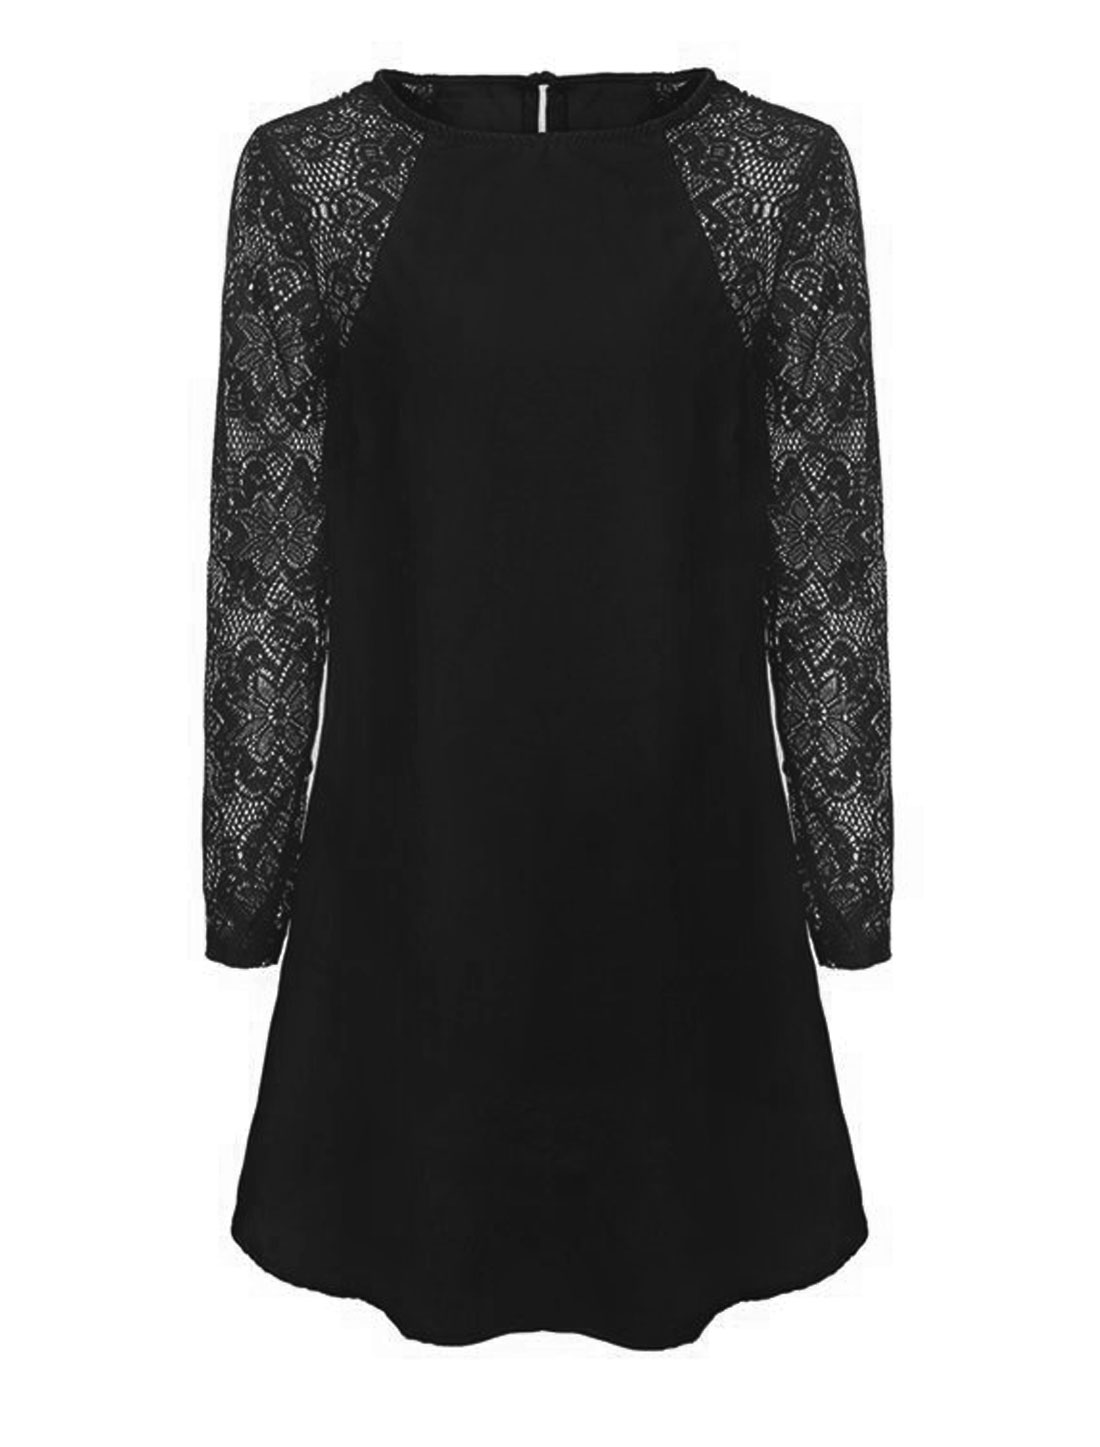 Women Crochet Panel Hollow Out Button Closure Back Short Dress Black M